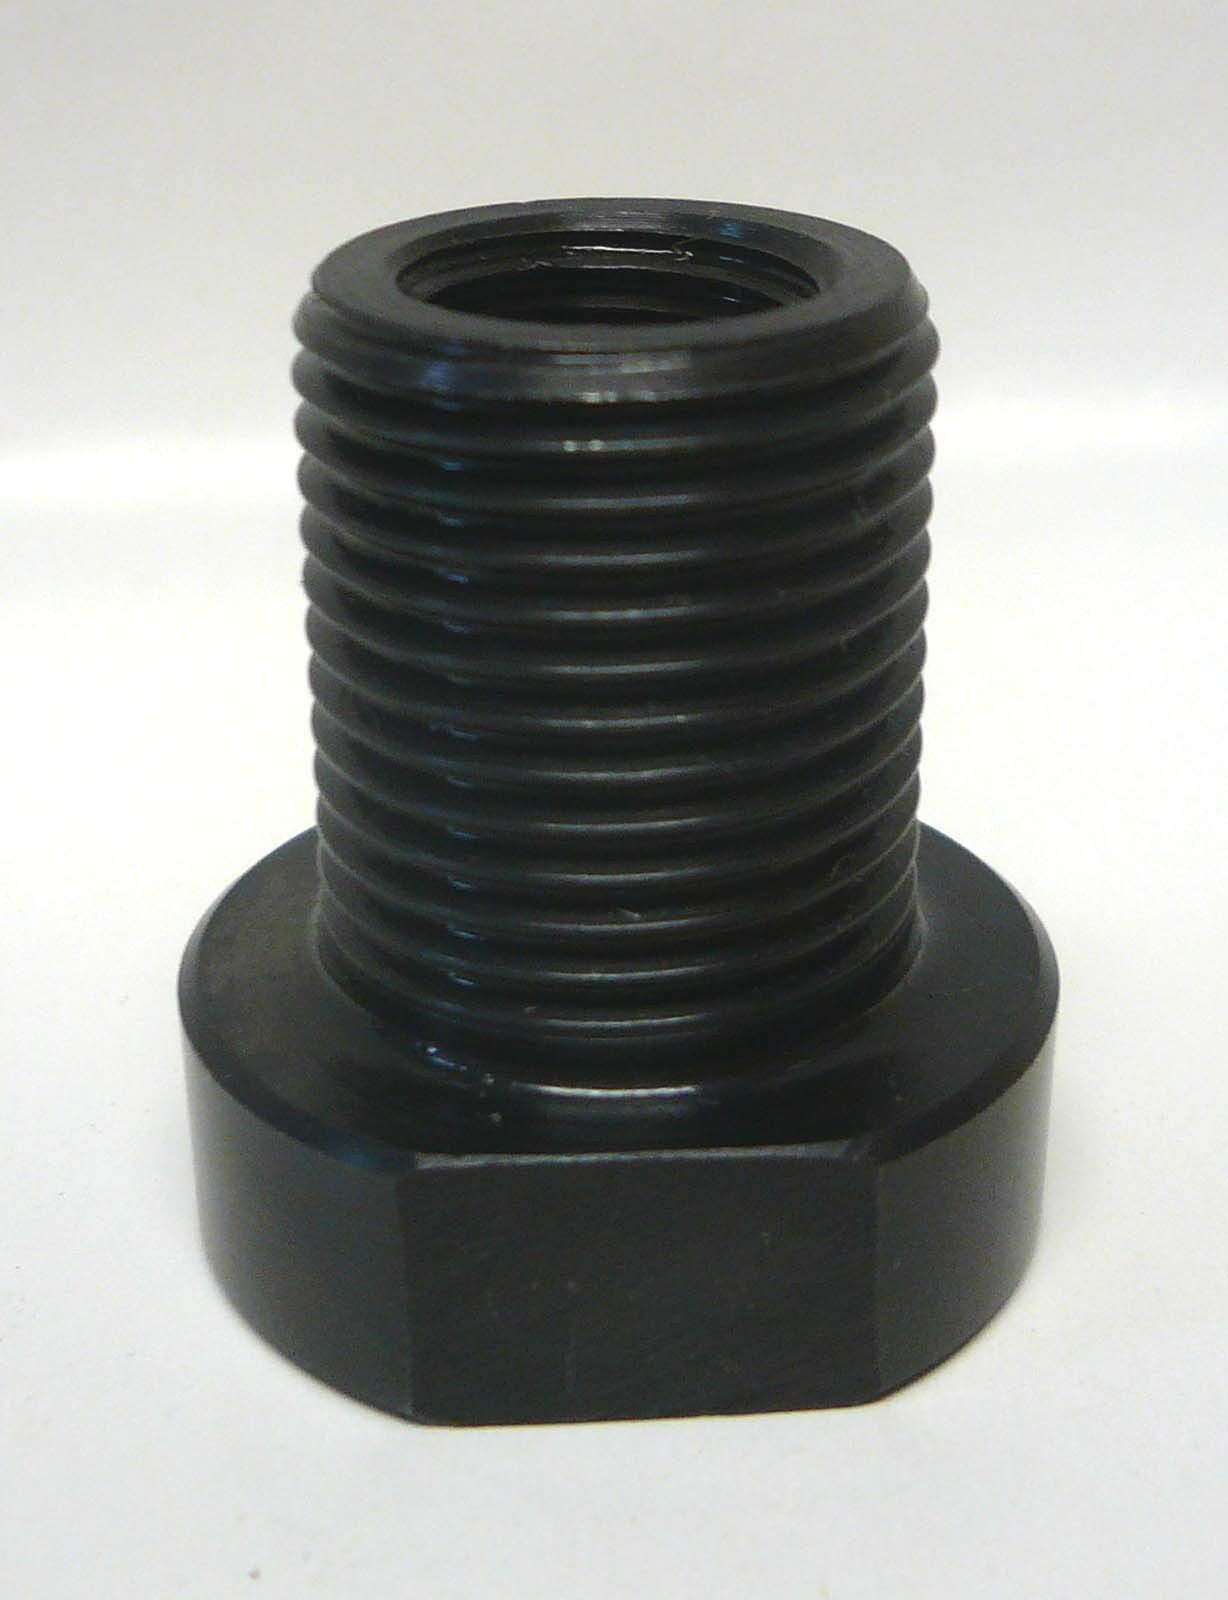 Lathe threaded spindle adapter bushing to